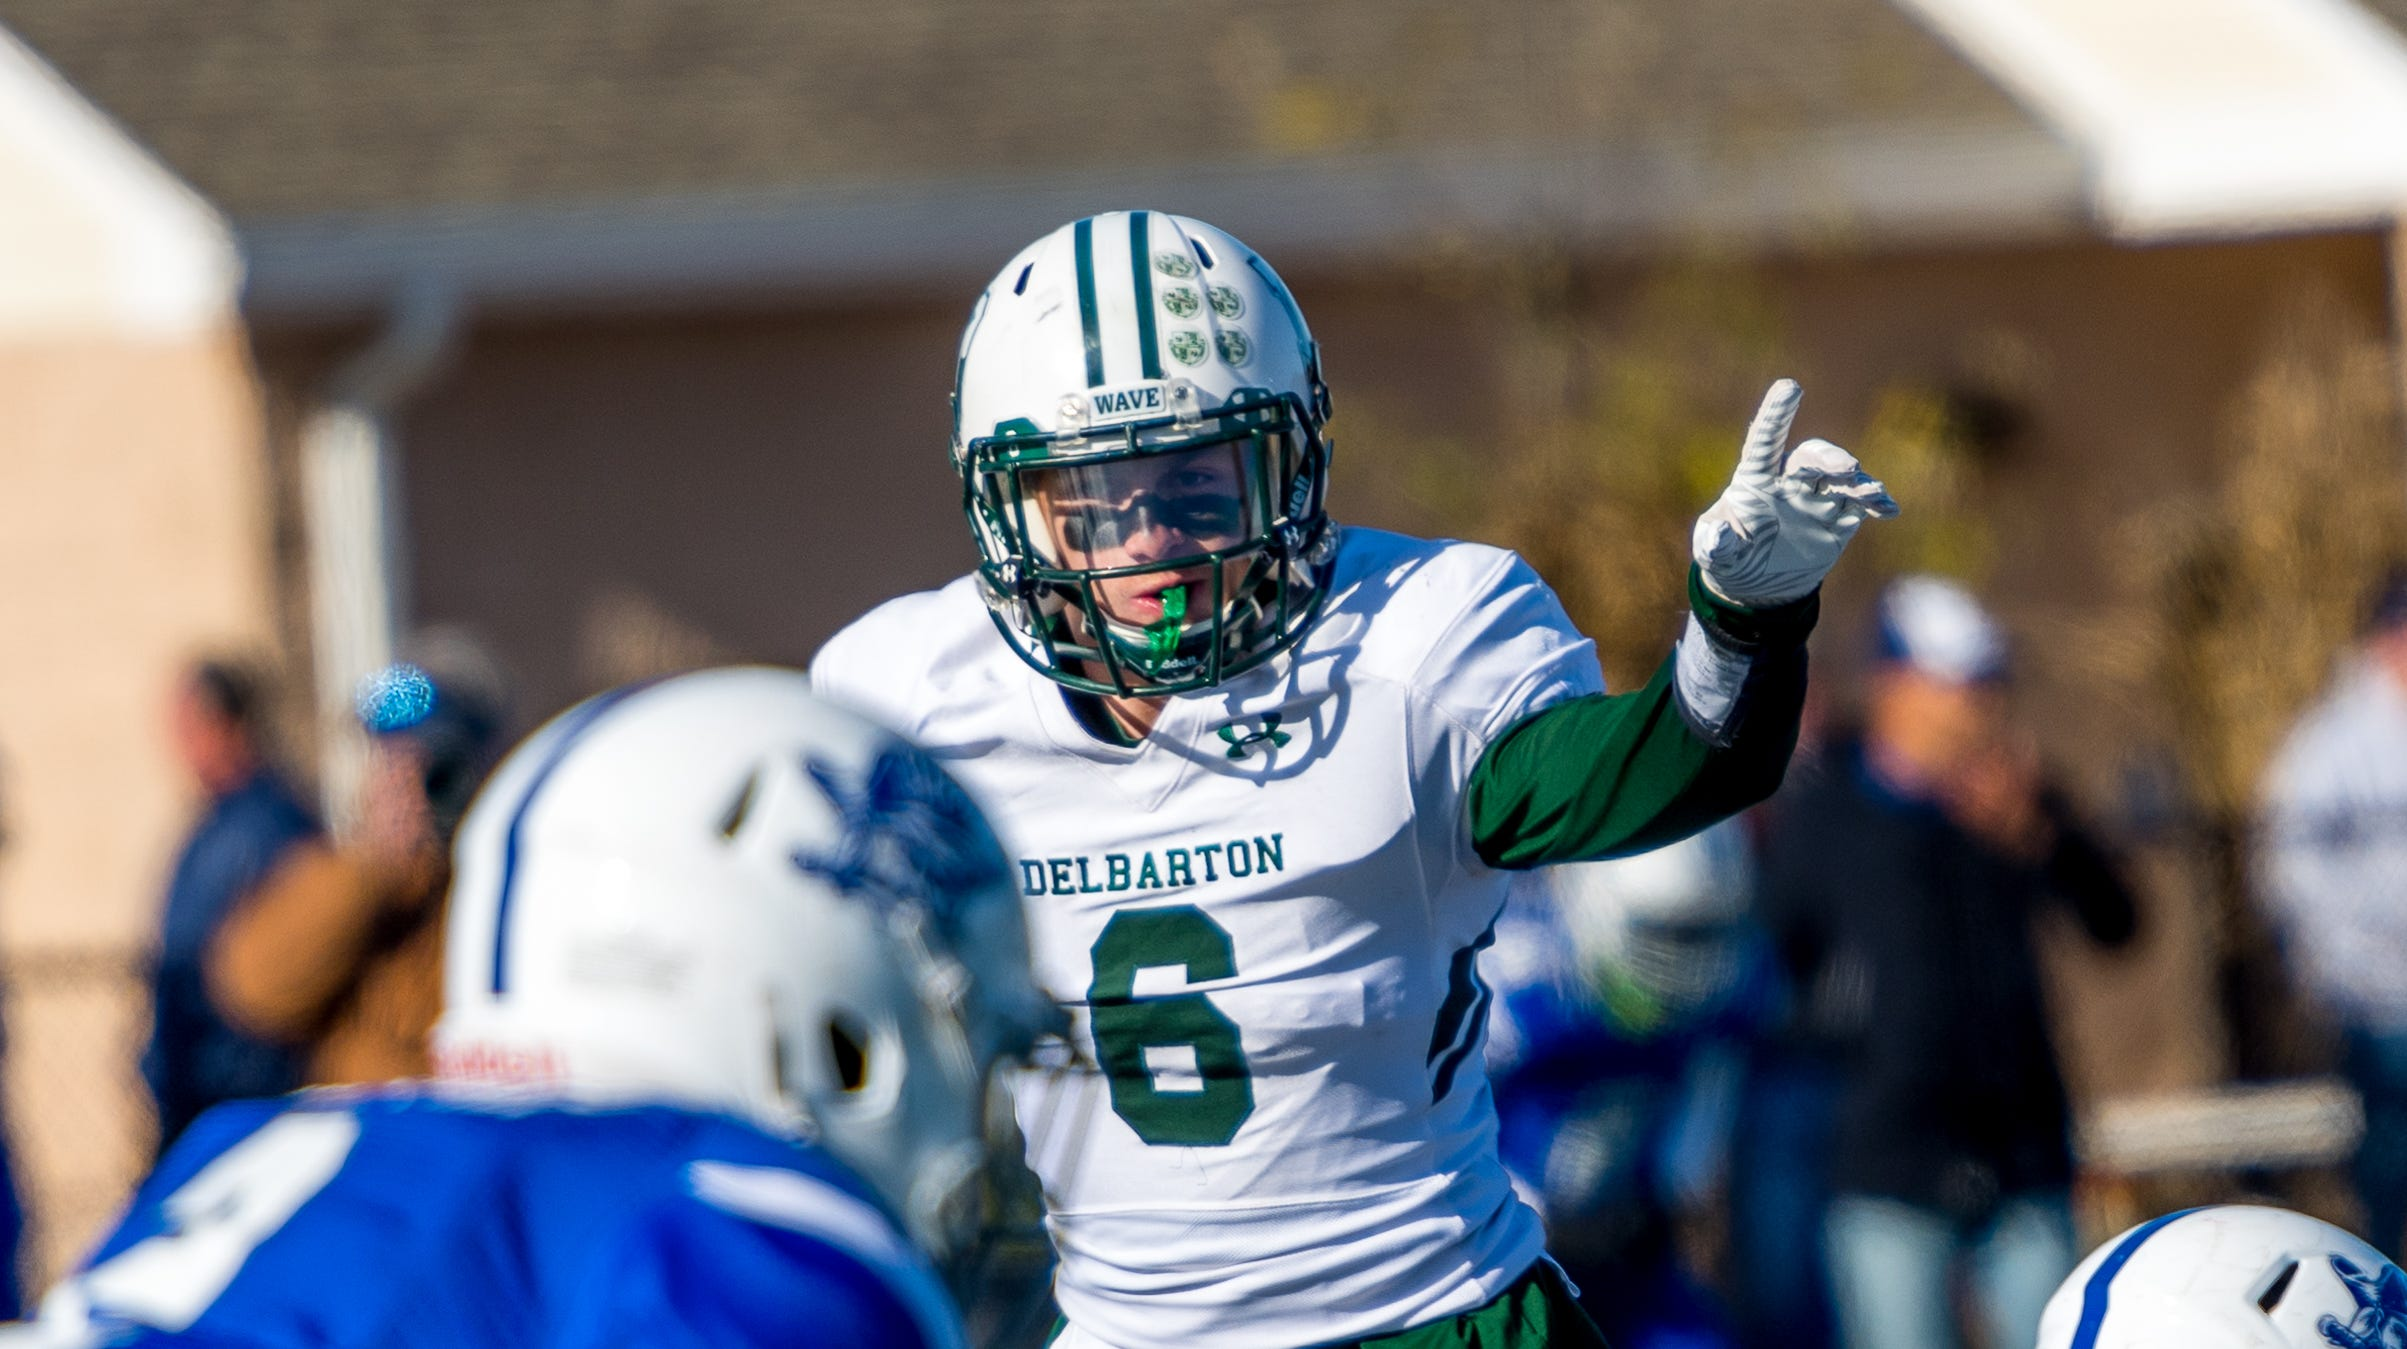 Delbarton Senior Michael Jarmolowich Hopes To Earn Fbs Football Spot